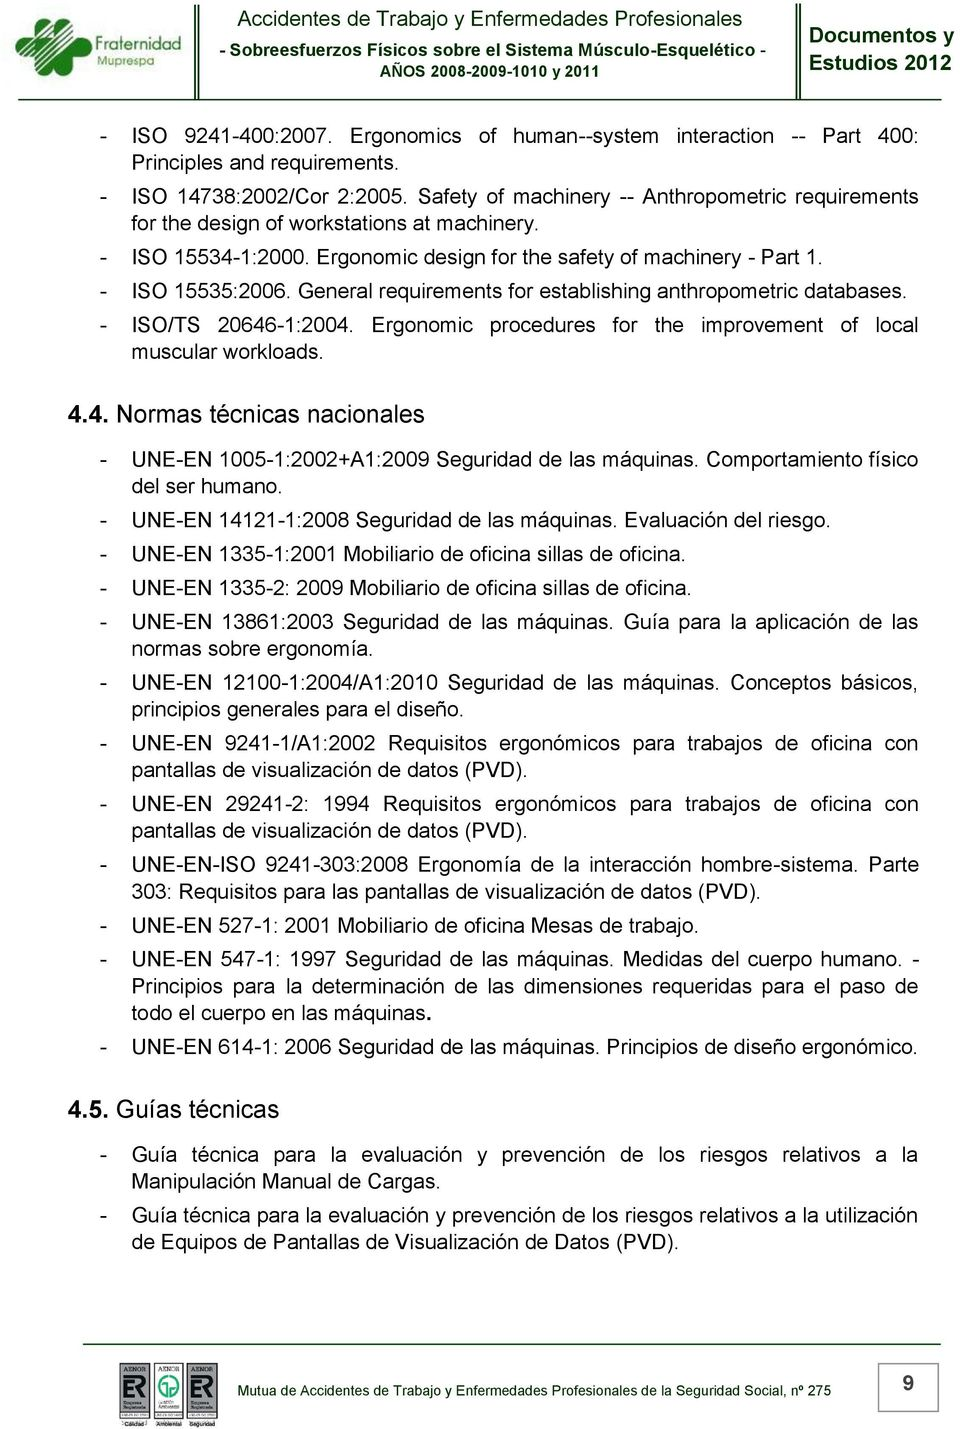 General requirements for establishing anthropometric databases. - ISO/TS 2646-:24. Ergonomic procedures for the improvement of local muscular workloads. 4.4. Normas técnicas nacionales - UNE-EN 5-:22+A:29 Seguridad de las máquinas.